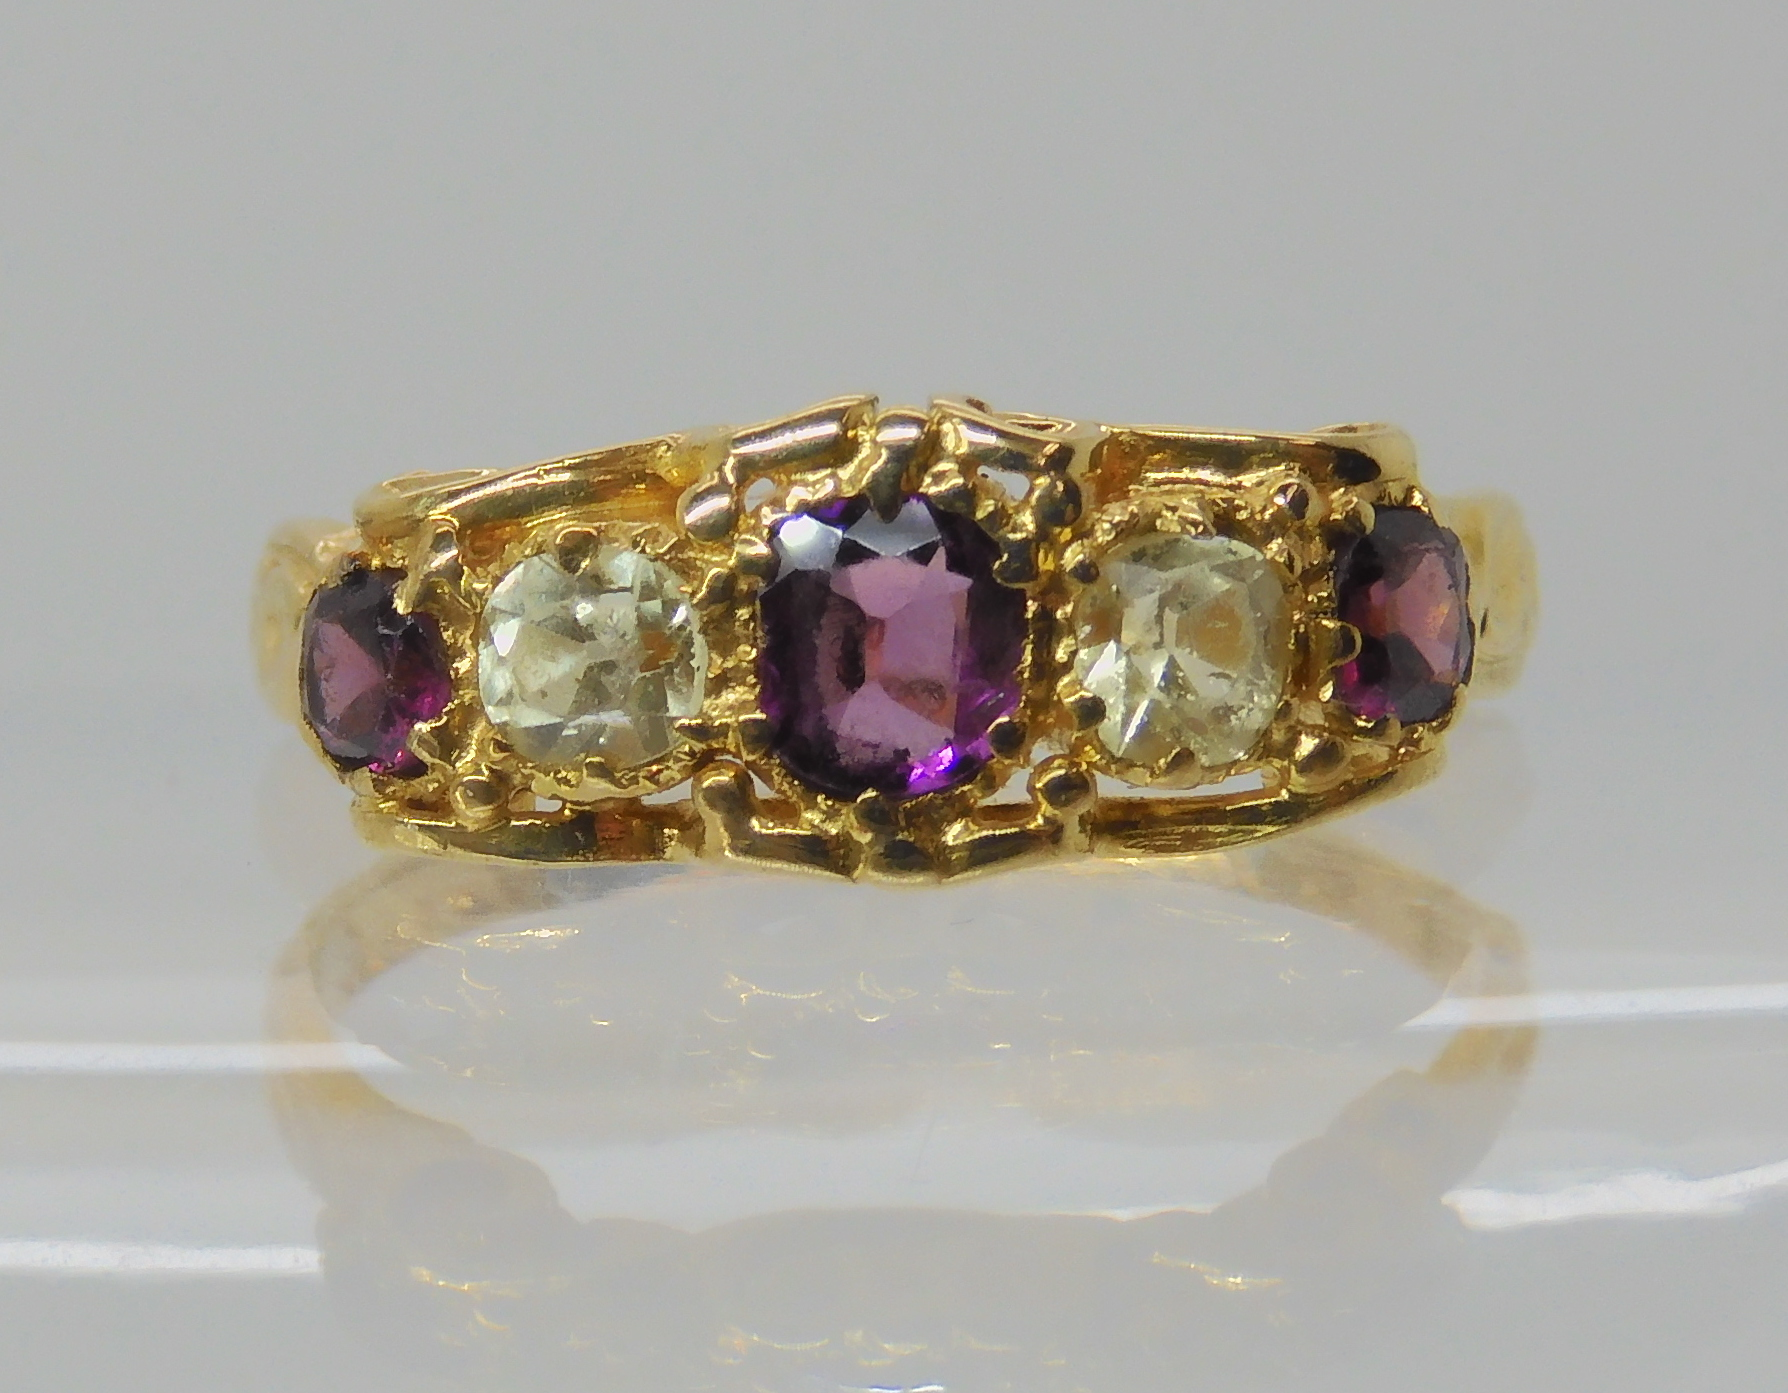 A VICTORIAN GEM SET RING inscribed and dated 1861, set with garnets and pale green gems, finger size